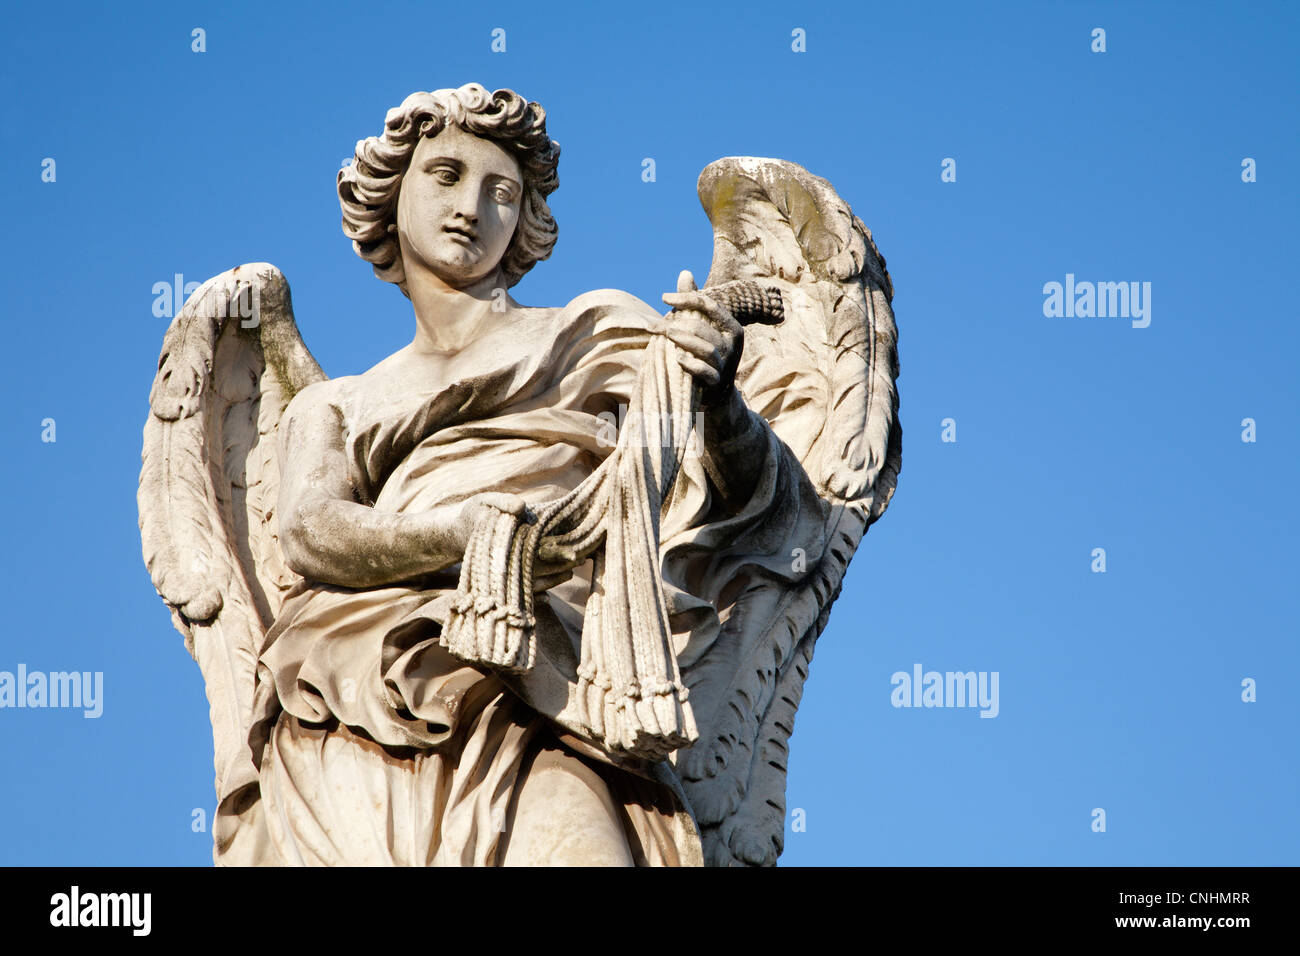 Rom - Angel with the whips - Ponte Sant'Angelo - Angels bridge - designed by Bernini - Stock Image